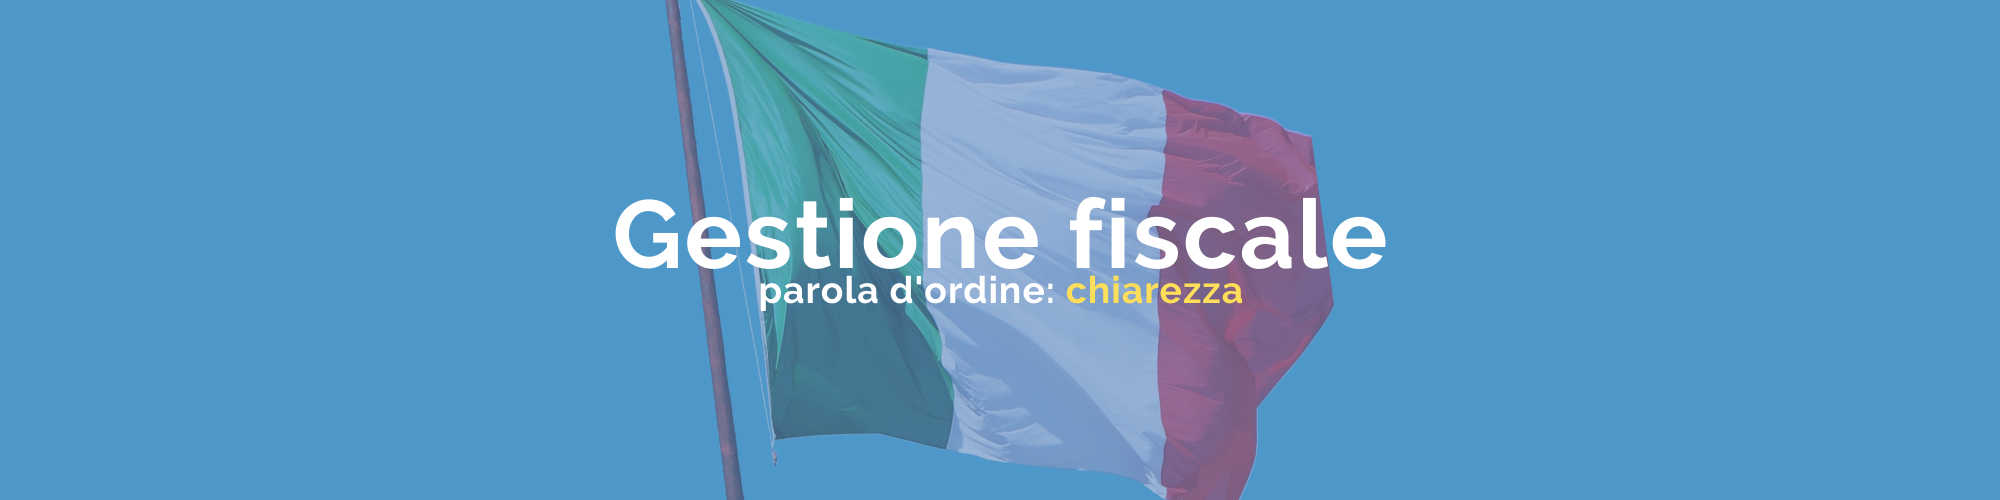 banner gestione fiscale